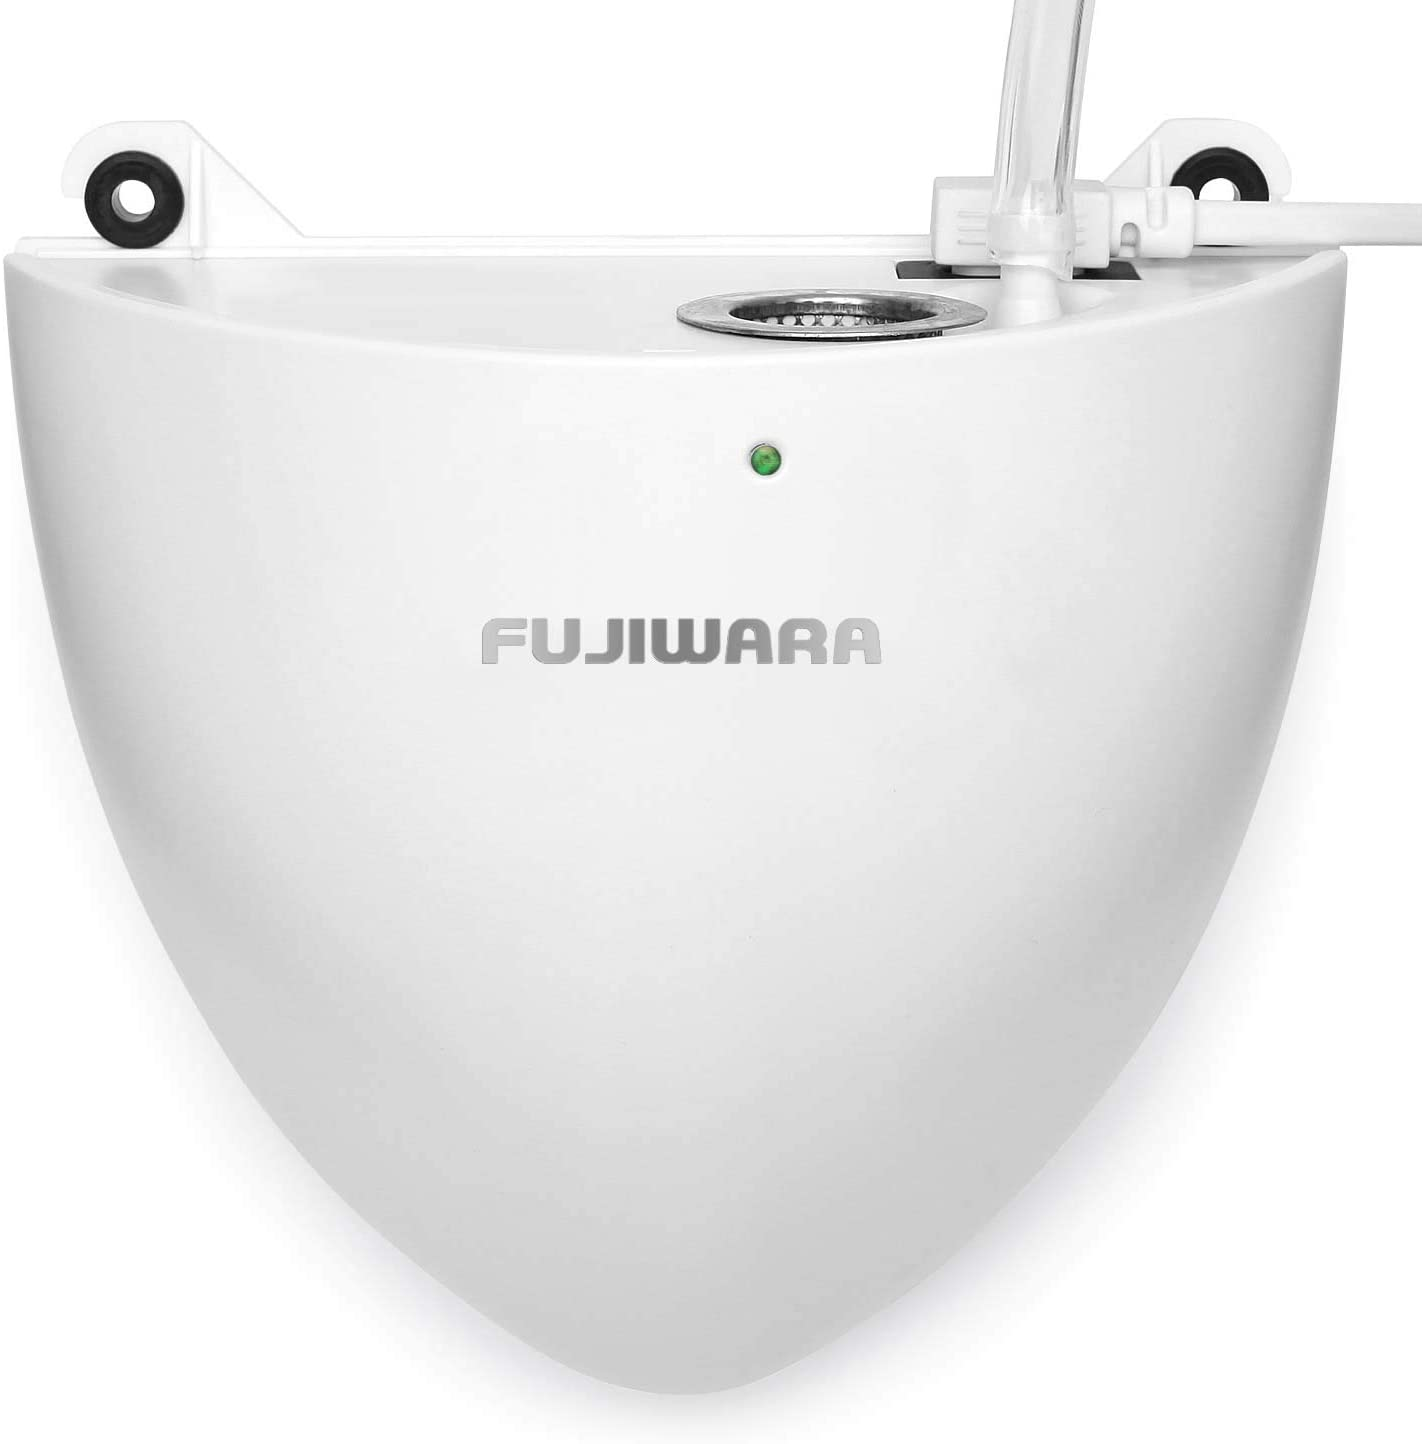 FUJIWARA Condensate Pump Exquisite Automatic Condensation Drain Removal Pump Wall Mounted Quiet for HVAC,Air Conditioner,Dehumidifier,Furnance,Ice Maker,Suitable for A/C 1-3HP 2200W (FUJ—24L)